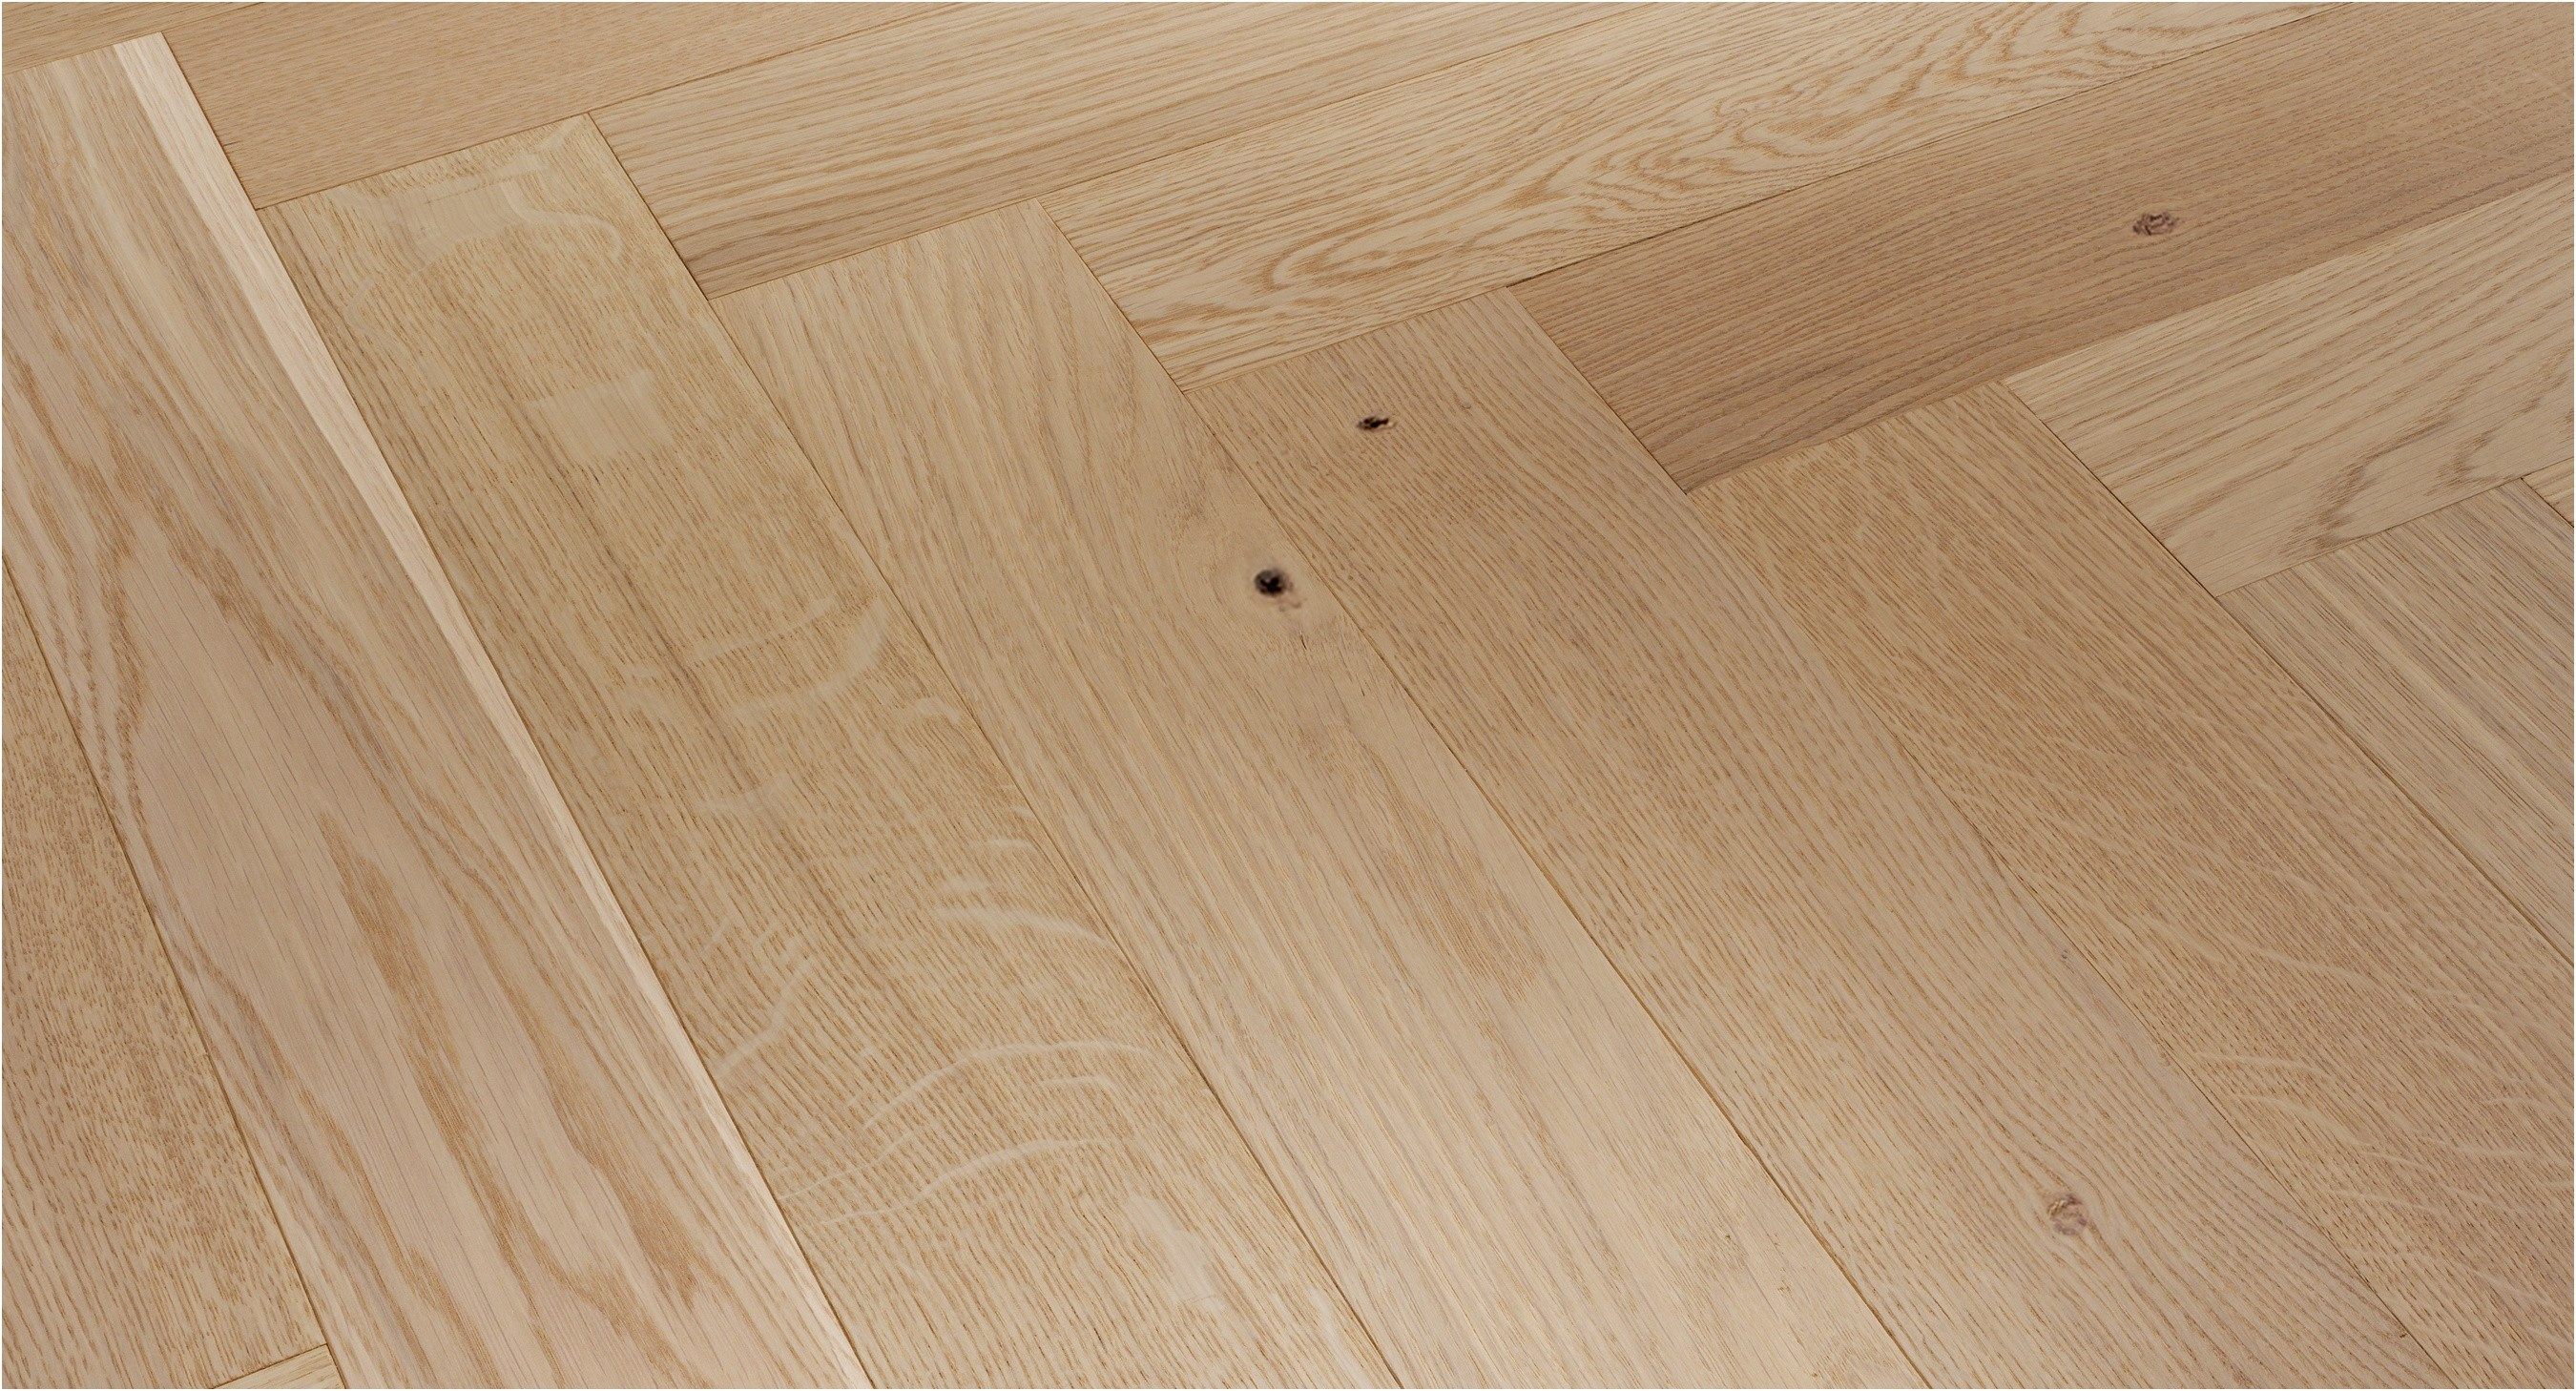 how to tell what hardwood floor you have of 19 awesome hardwood flooring for sale photograph dizpos com intended for hardwood flooring for sale awesome flooring sale near me stock 0d grace place barnegat nj photos